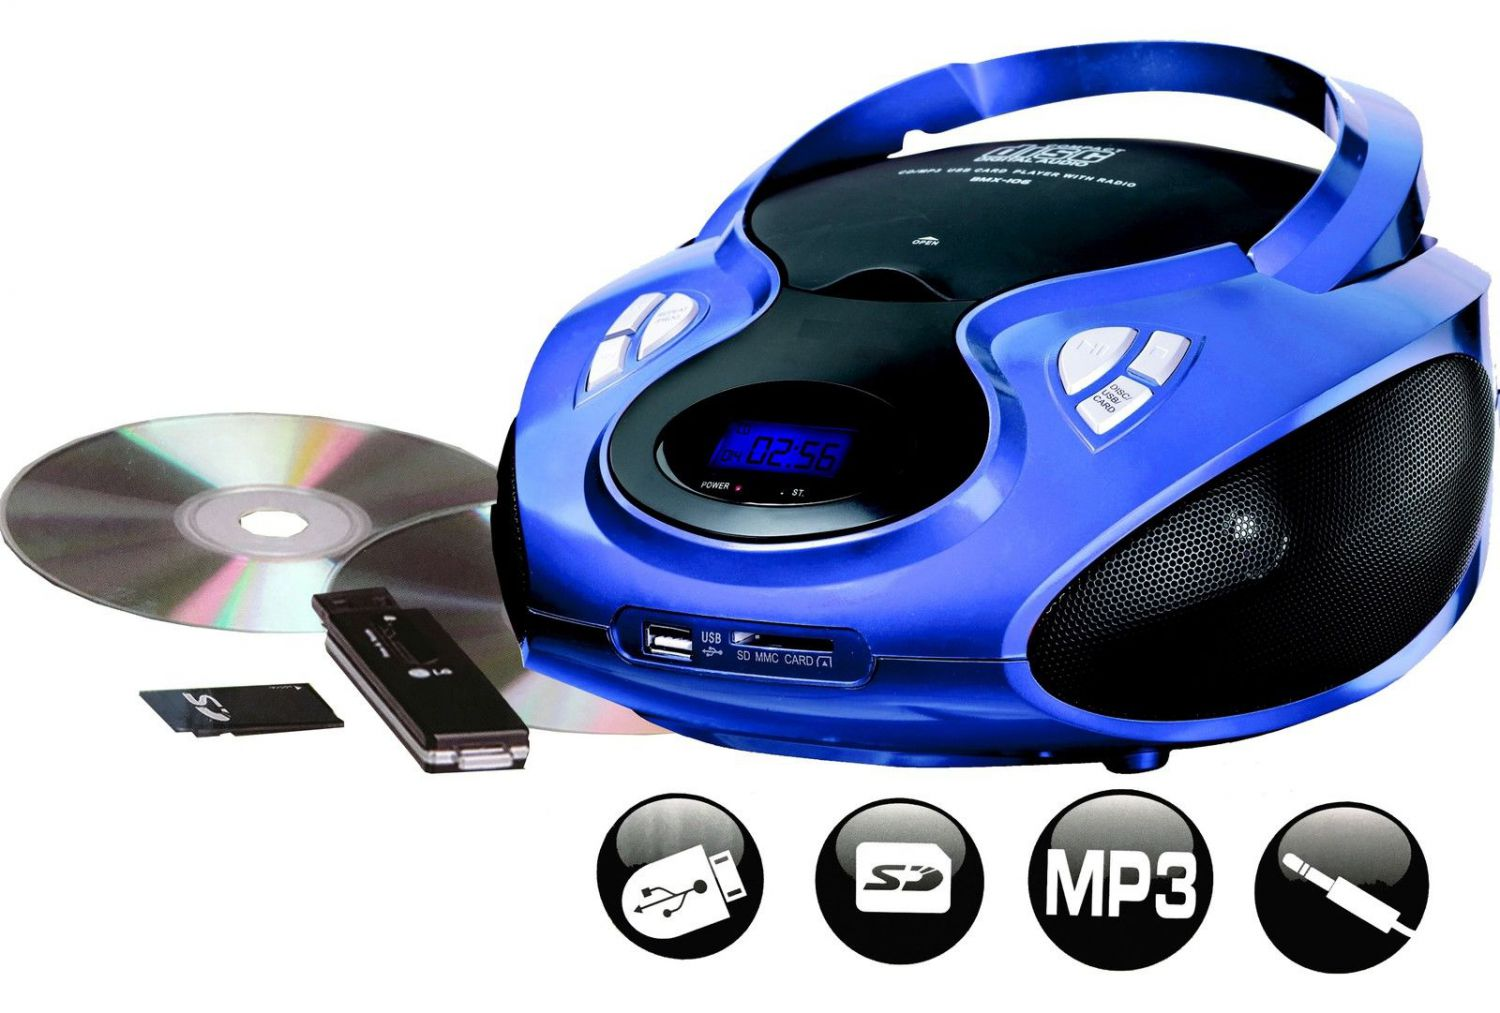 cd player tragbarer cd mp3 player radio usb sd blau ebay. Black Bedroom Furniture Sets. Home Design Ideas